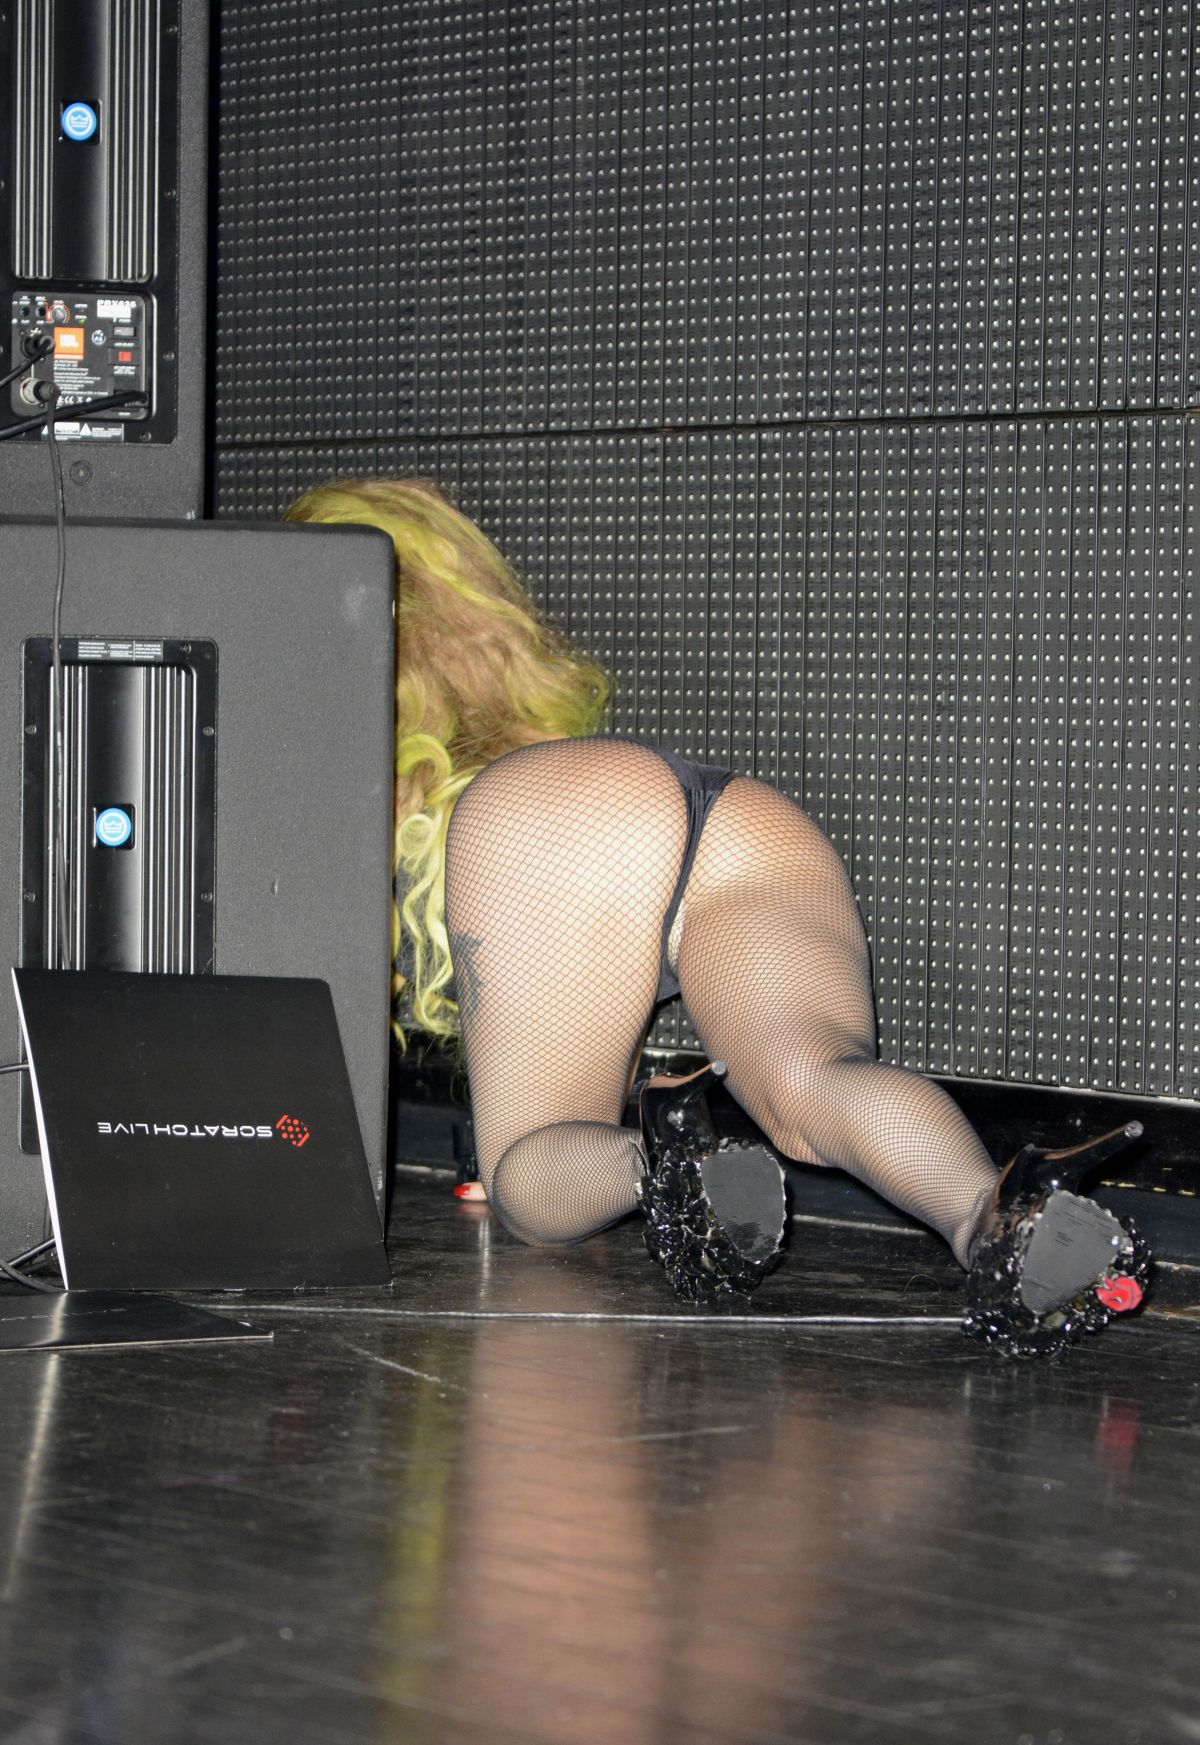 Lady gaga nude showing her pussy porn photo